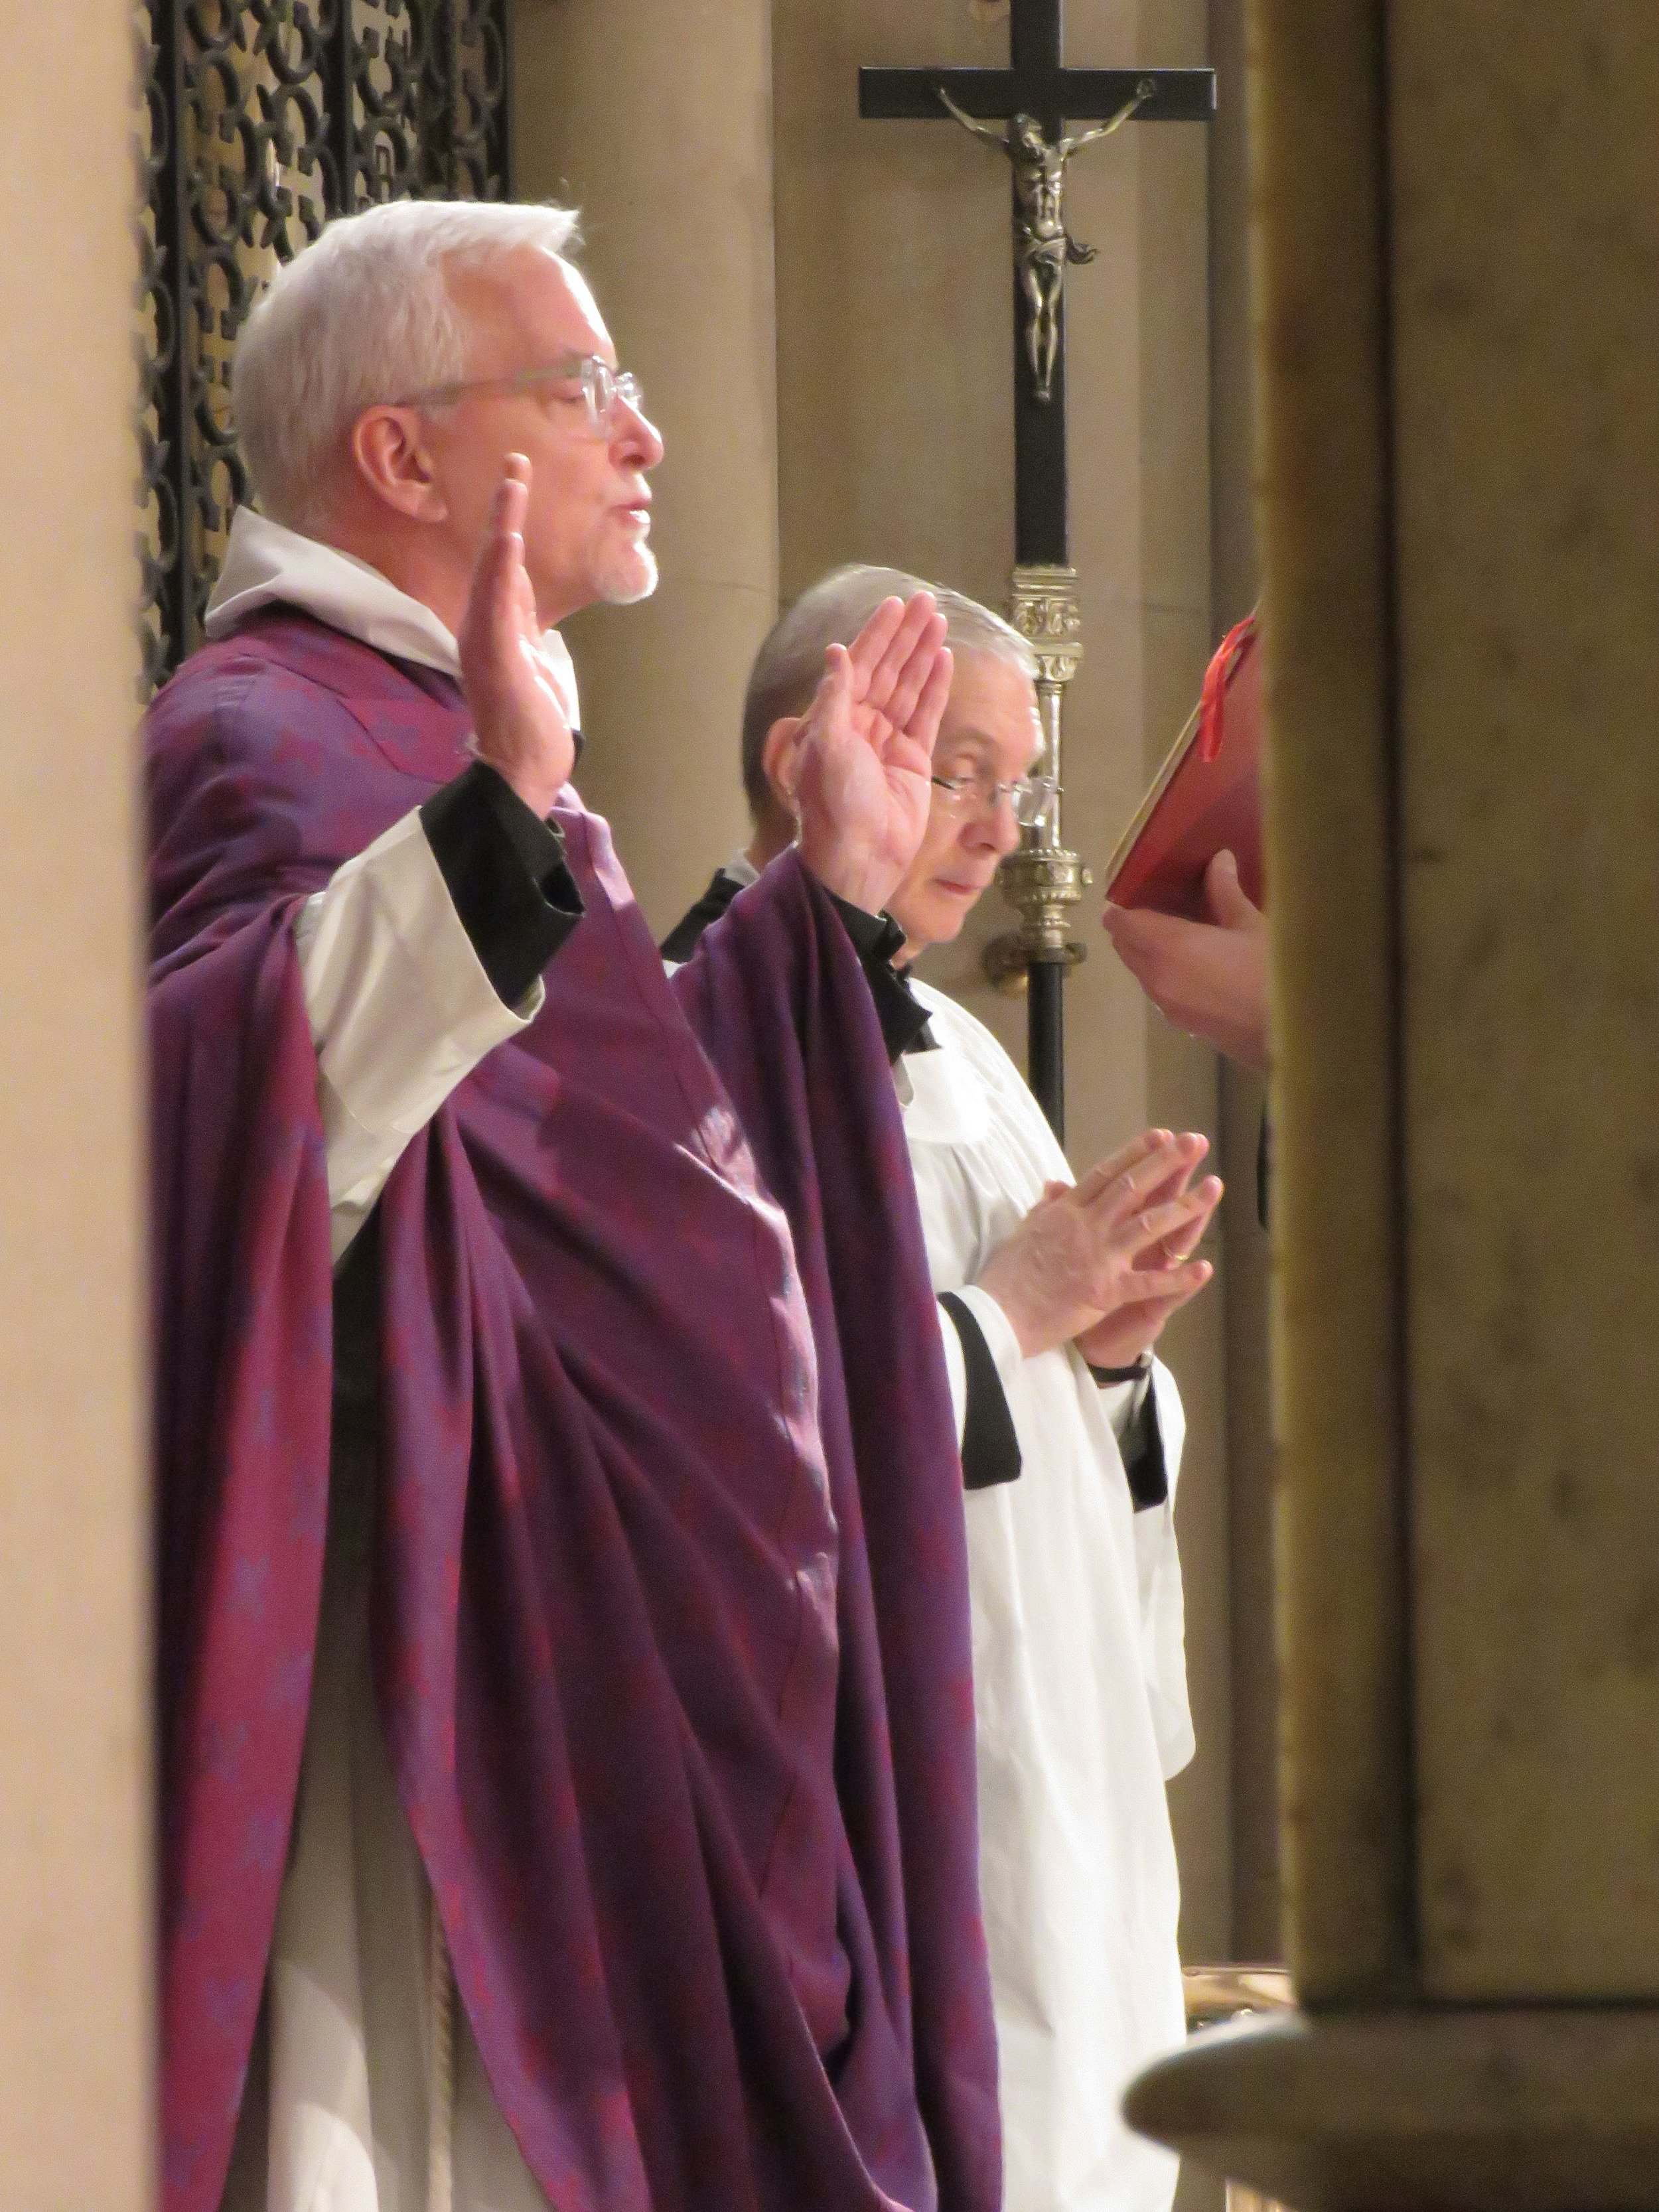 Fr. Jim Pace was celebrant and preacher for the Solemn Mass on the Second Sunday in Lent, March 17, 2019.   Photo by Damien Joseph SSF